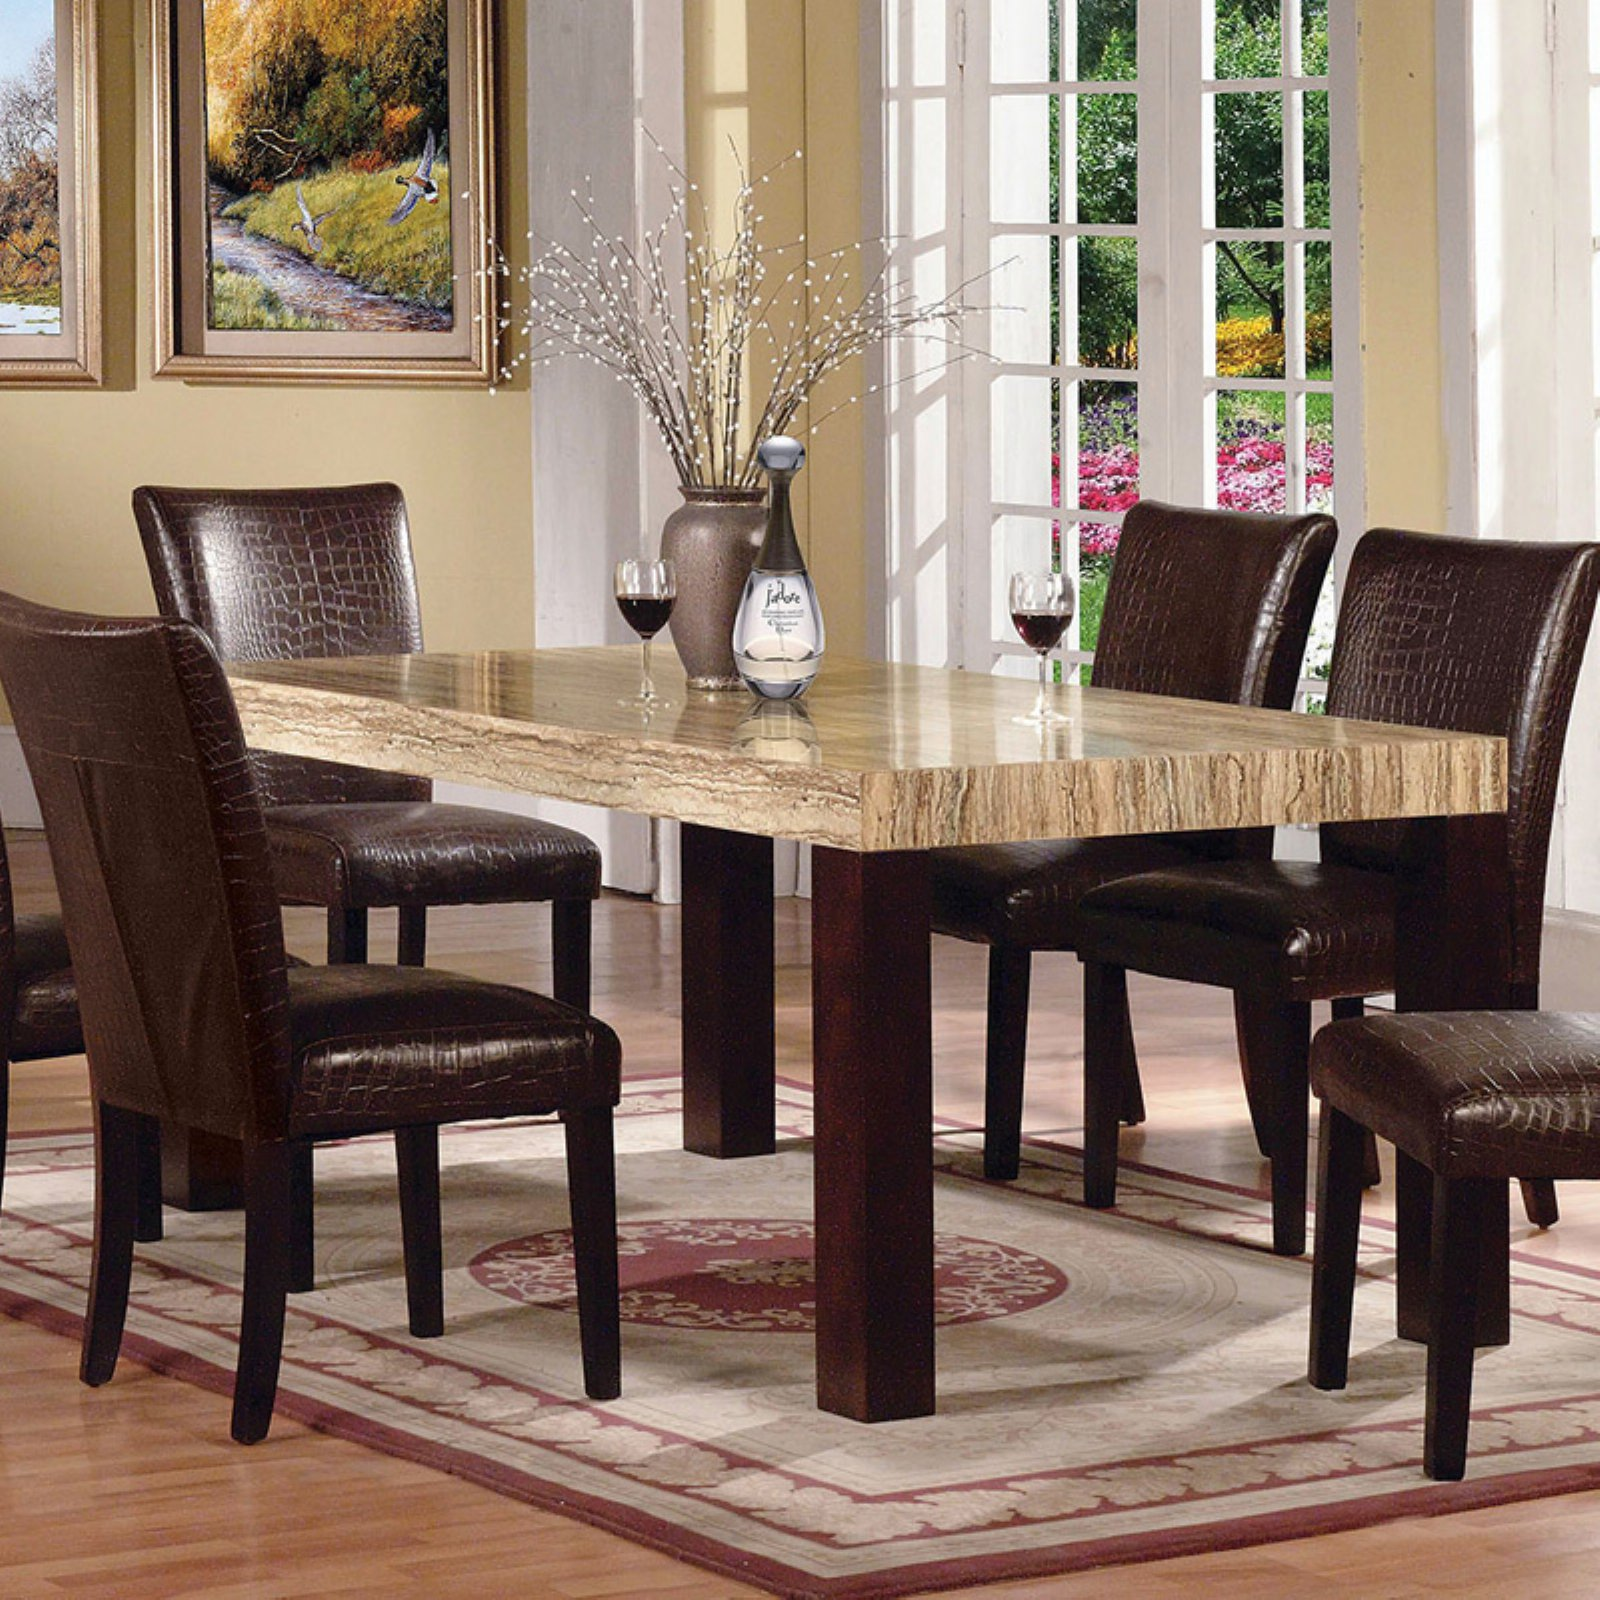 Acme Furniture Fraser Rectangular Dining Table